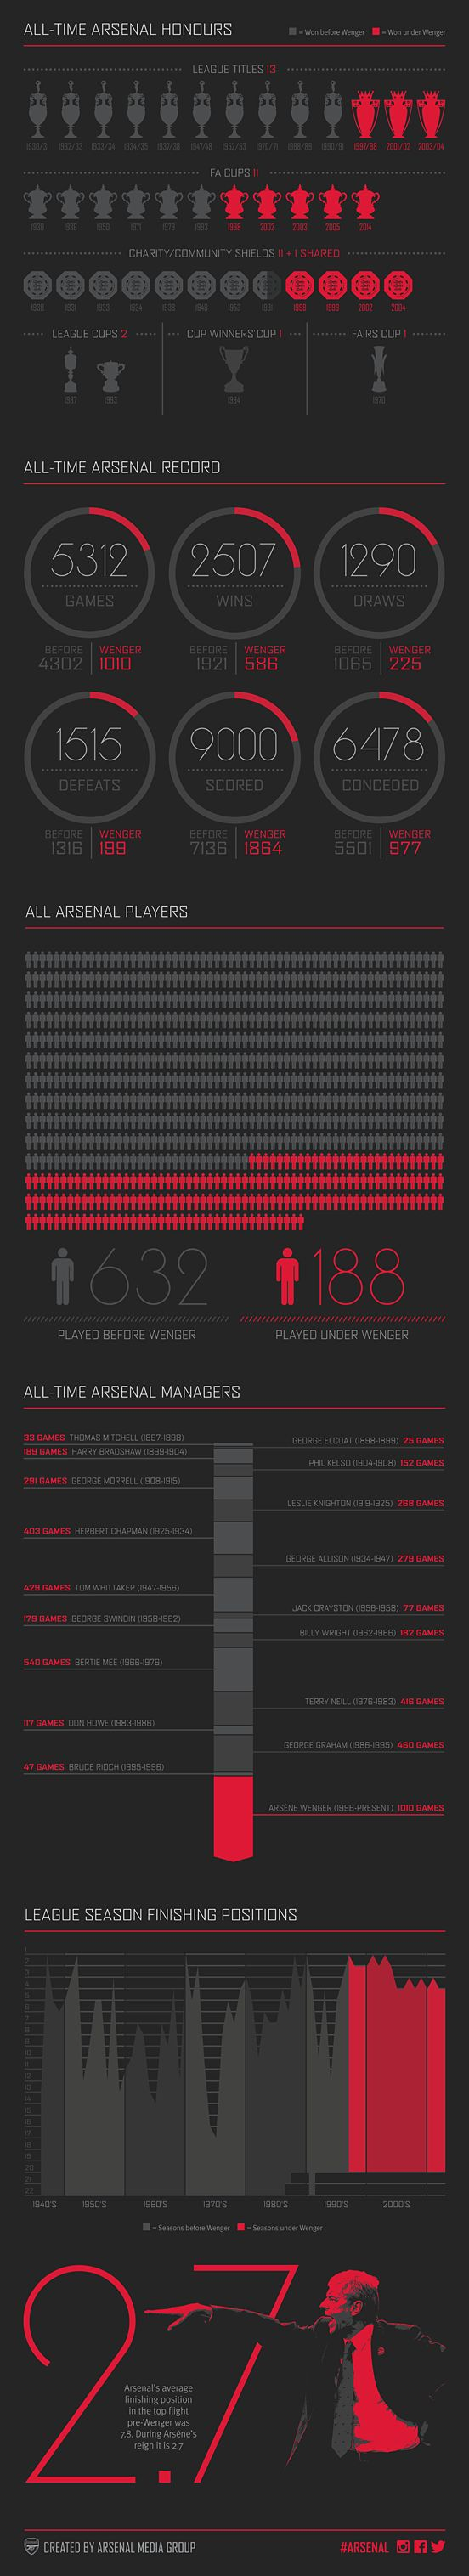 http://www.arsenal.com/assets/_files/images/may_14/gun__1401444807_wenger_infographic_552.png